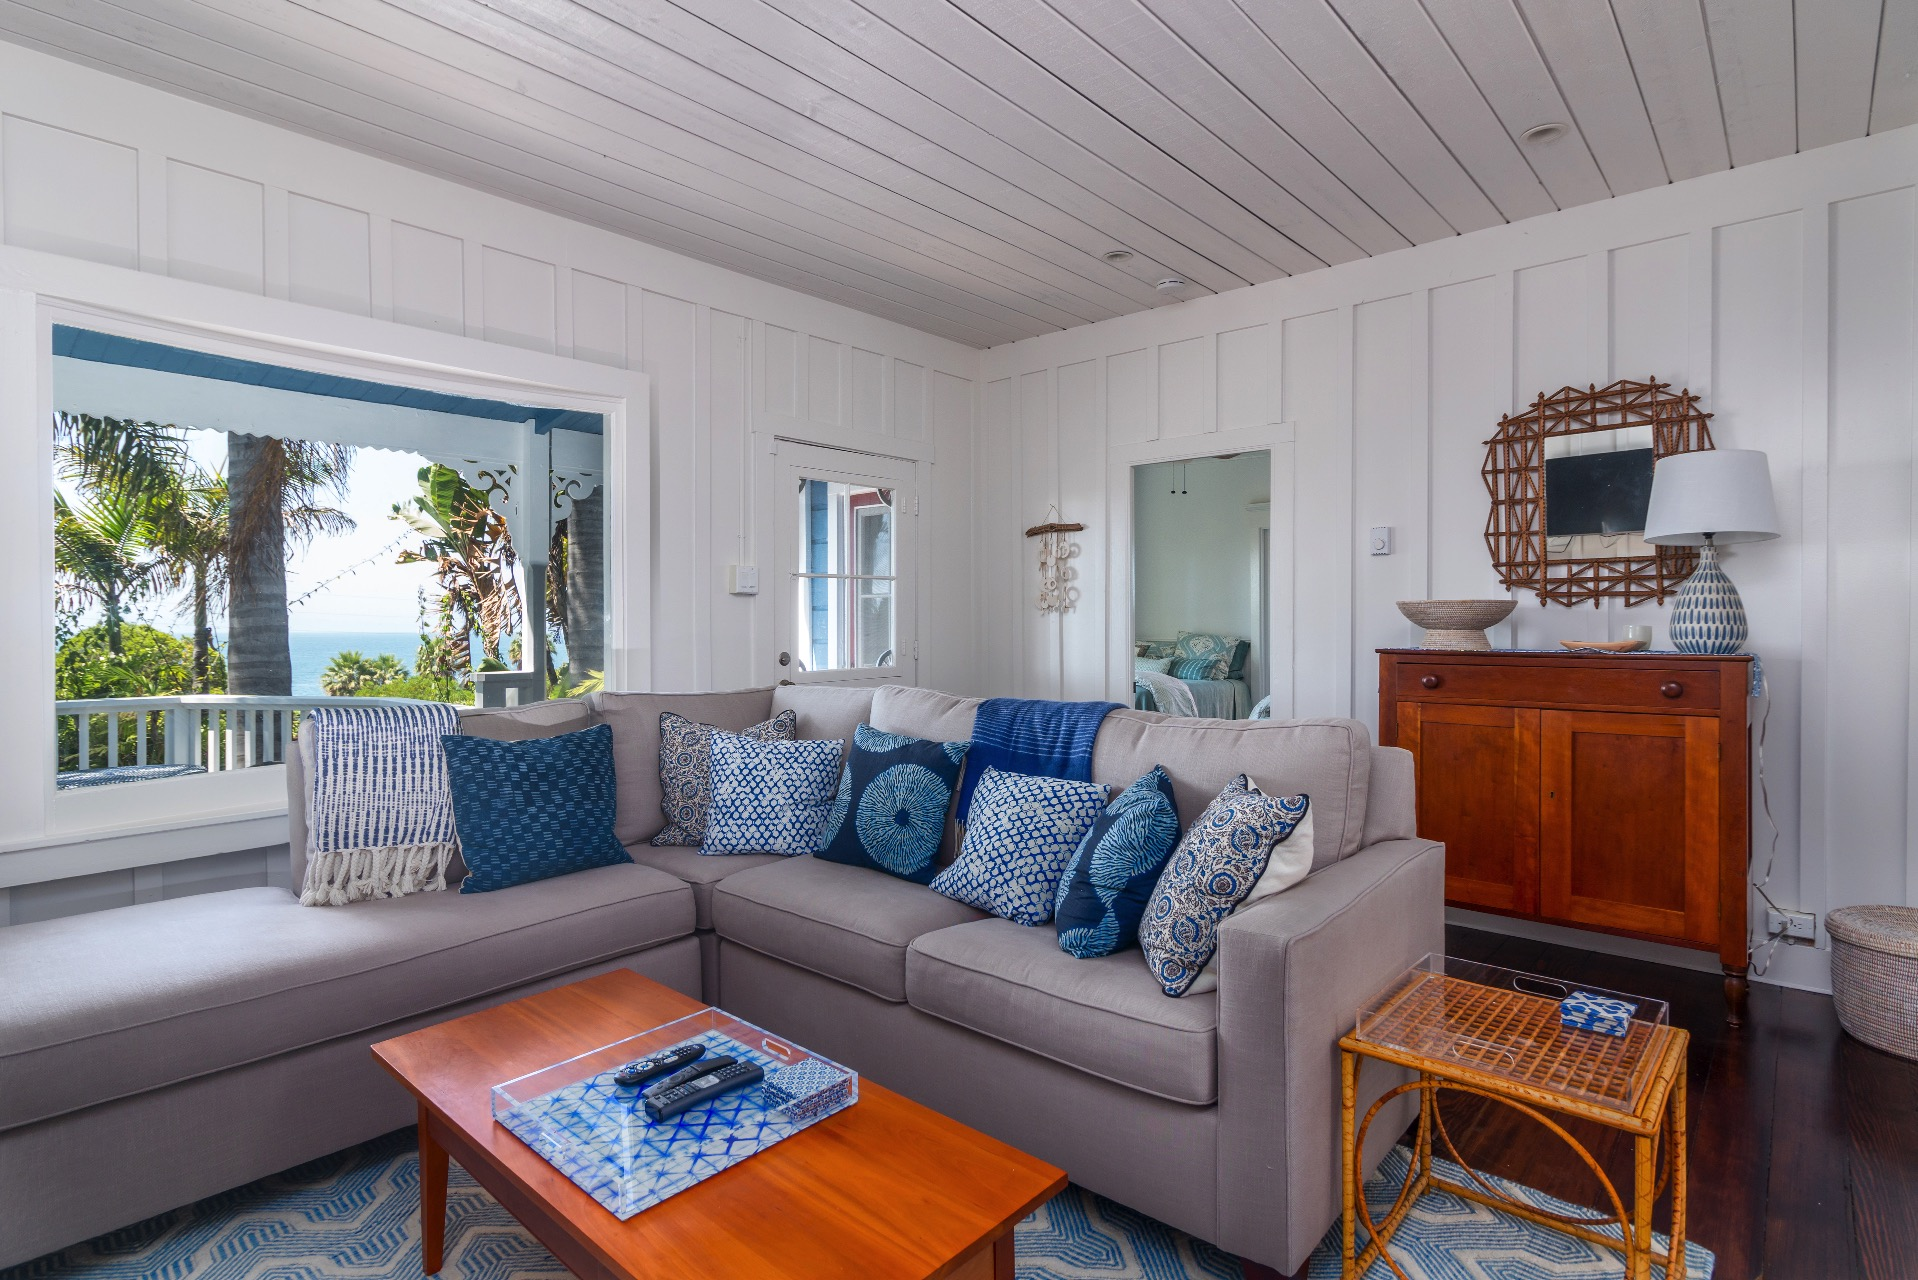 Cozy Living room with large window view of the ocean